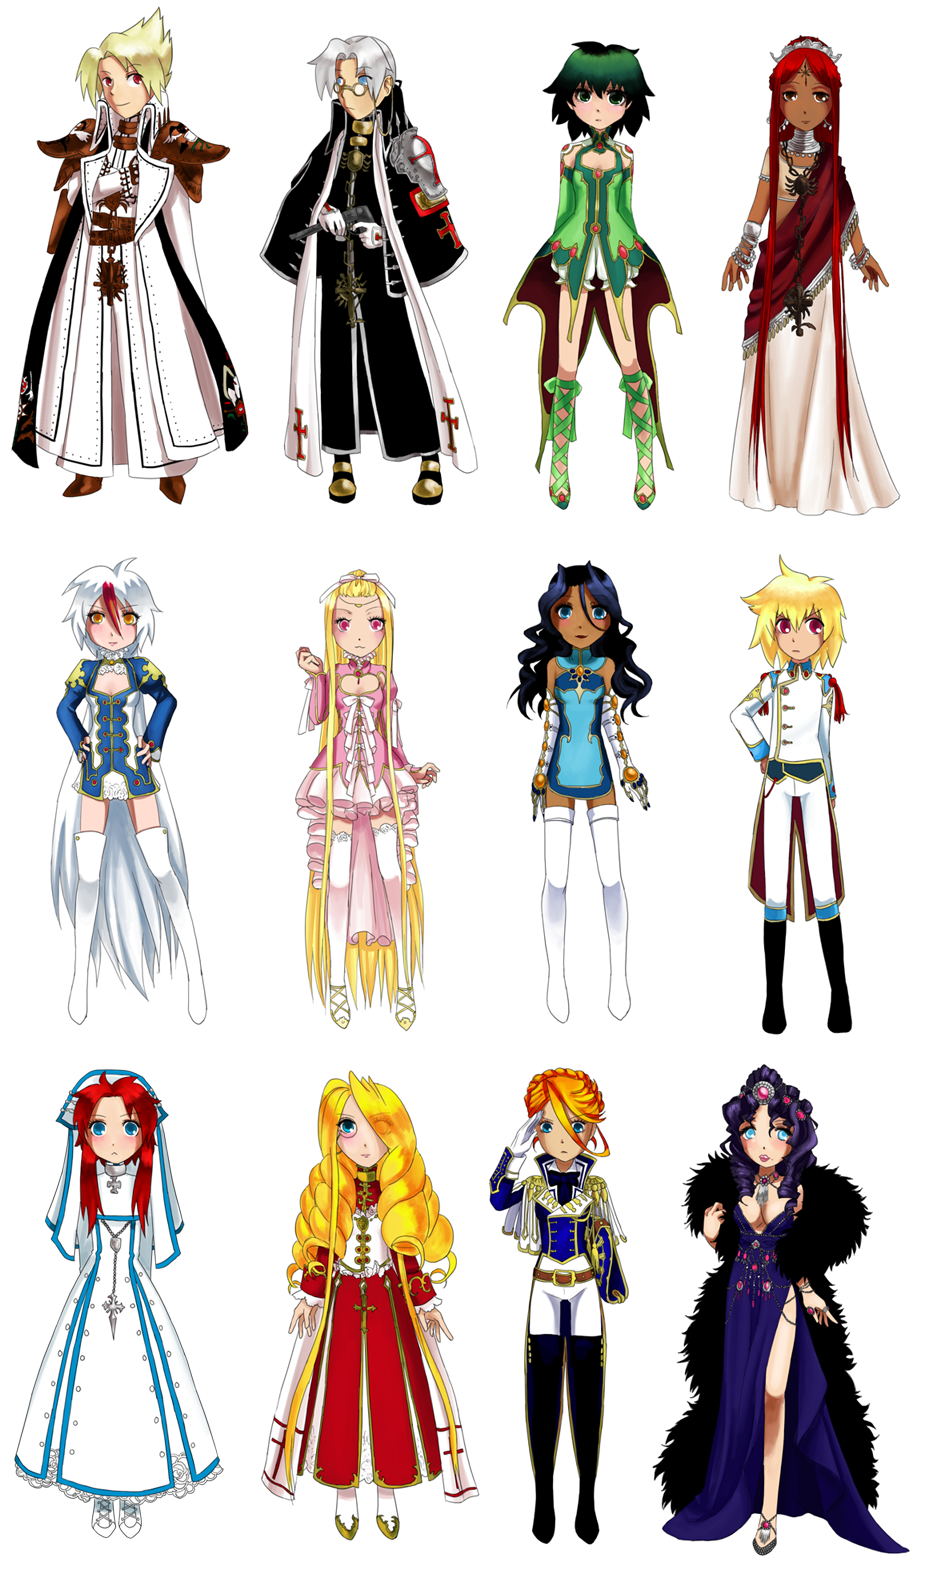 Blood C Anime Characters Wiki : Trinity blood by hapuriainen on deviantart